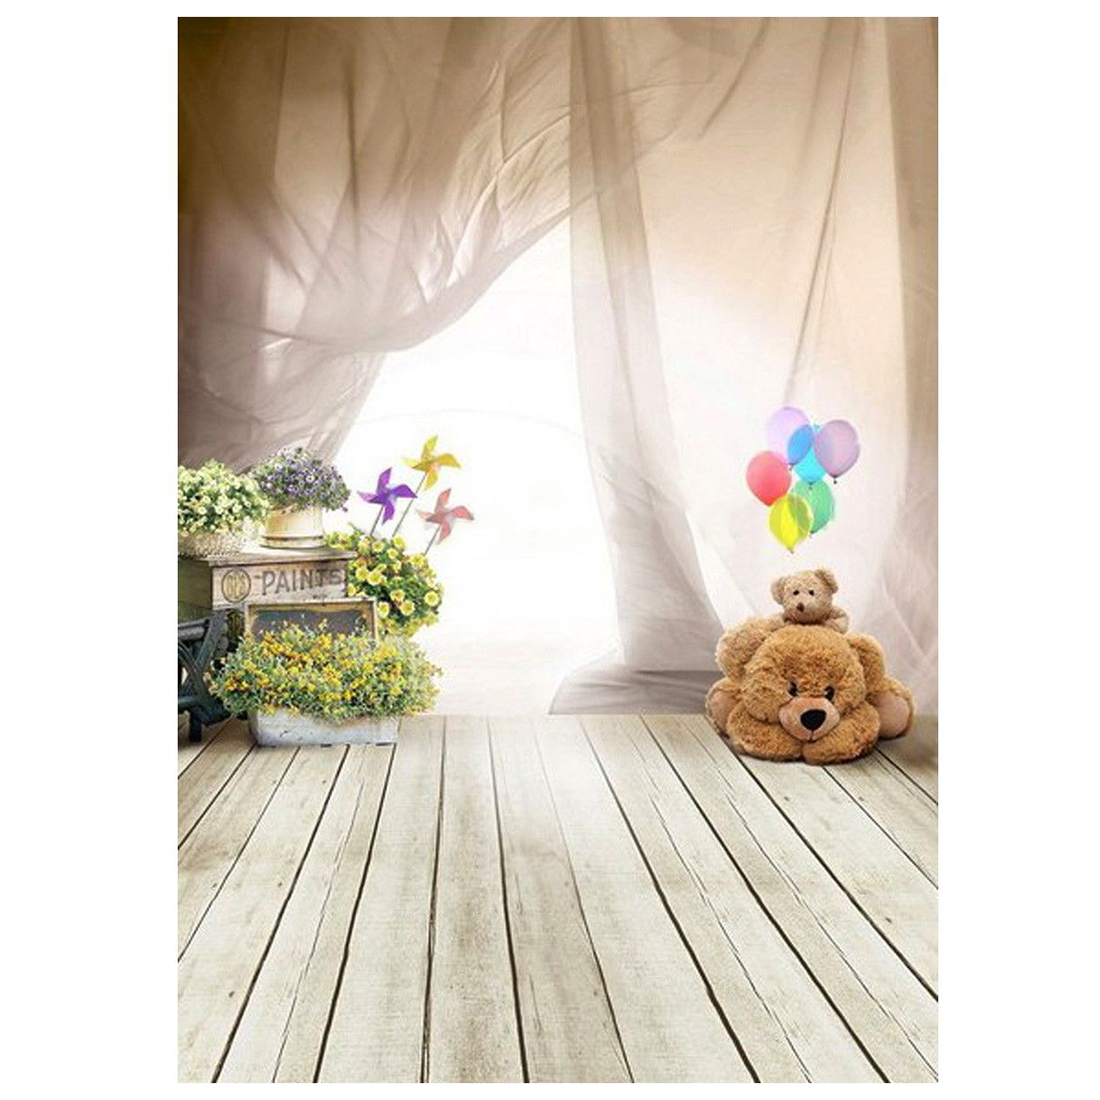 EDT-1m x 1.5m Lovely Bear Floor Balloon Studio Backdrops Children Photography Background магазин asg steyr m9 a1 16089 под шарики